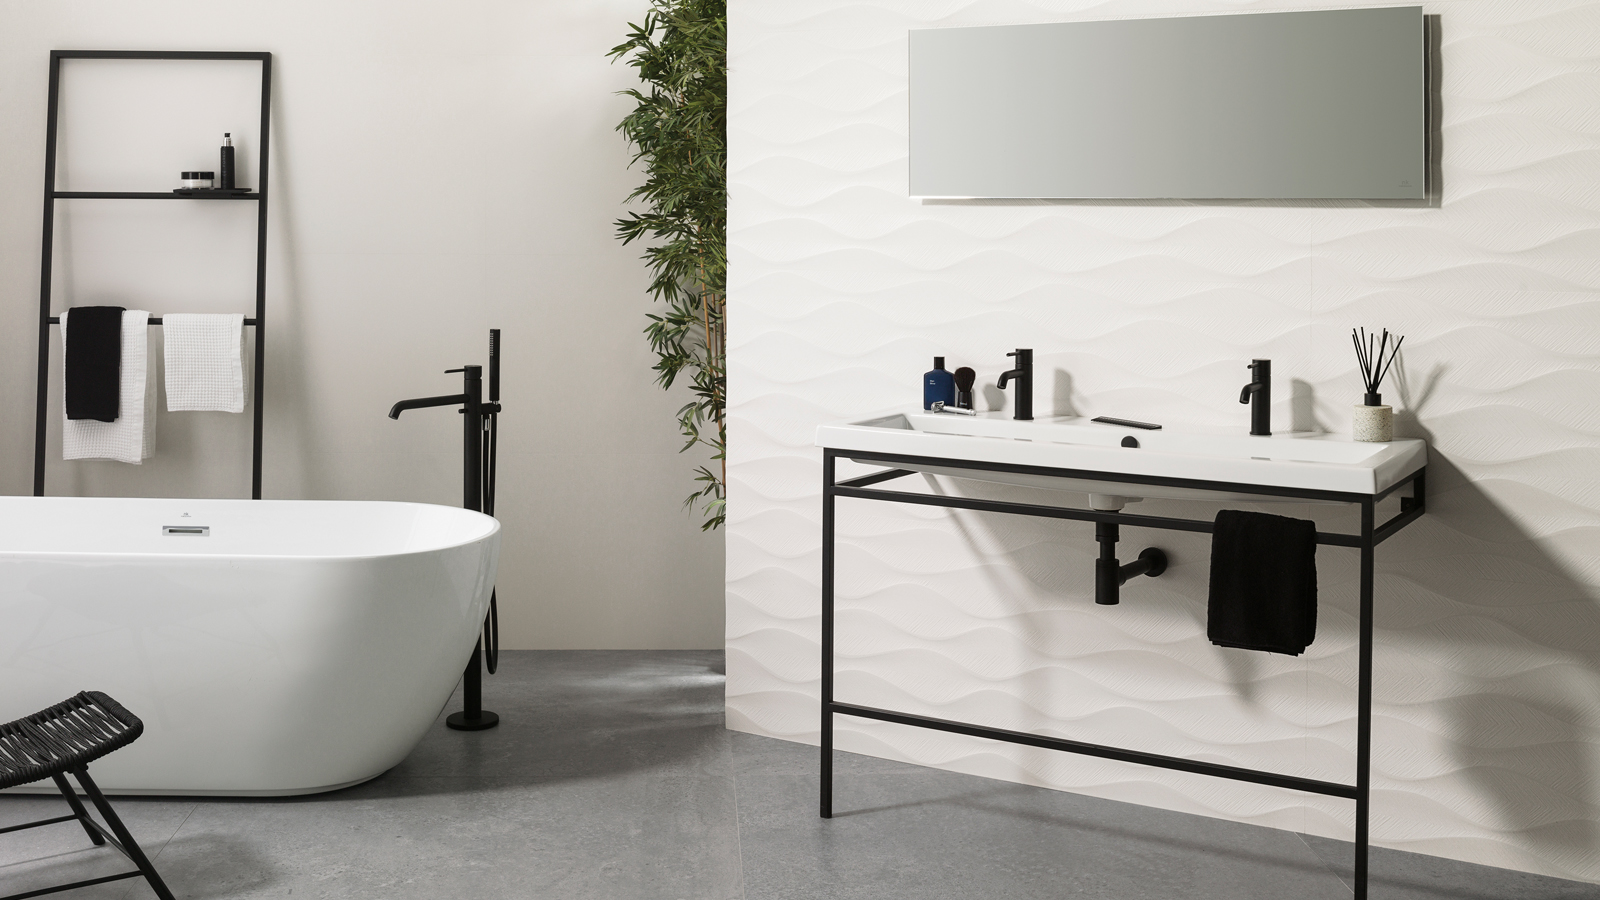 Deco Matt by Porcelanosa, a fresh take on white